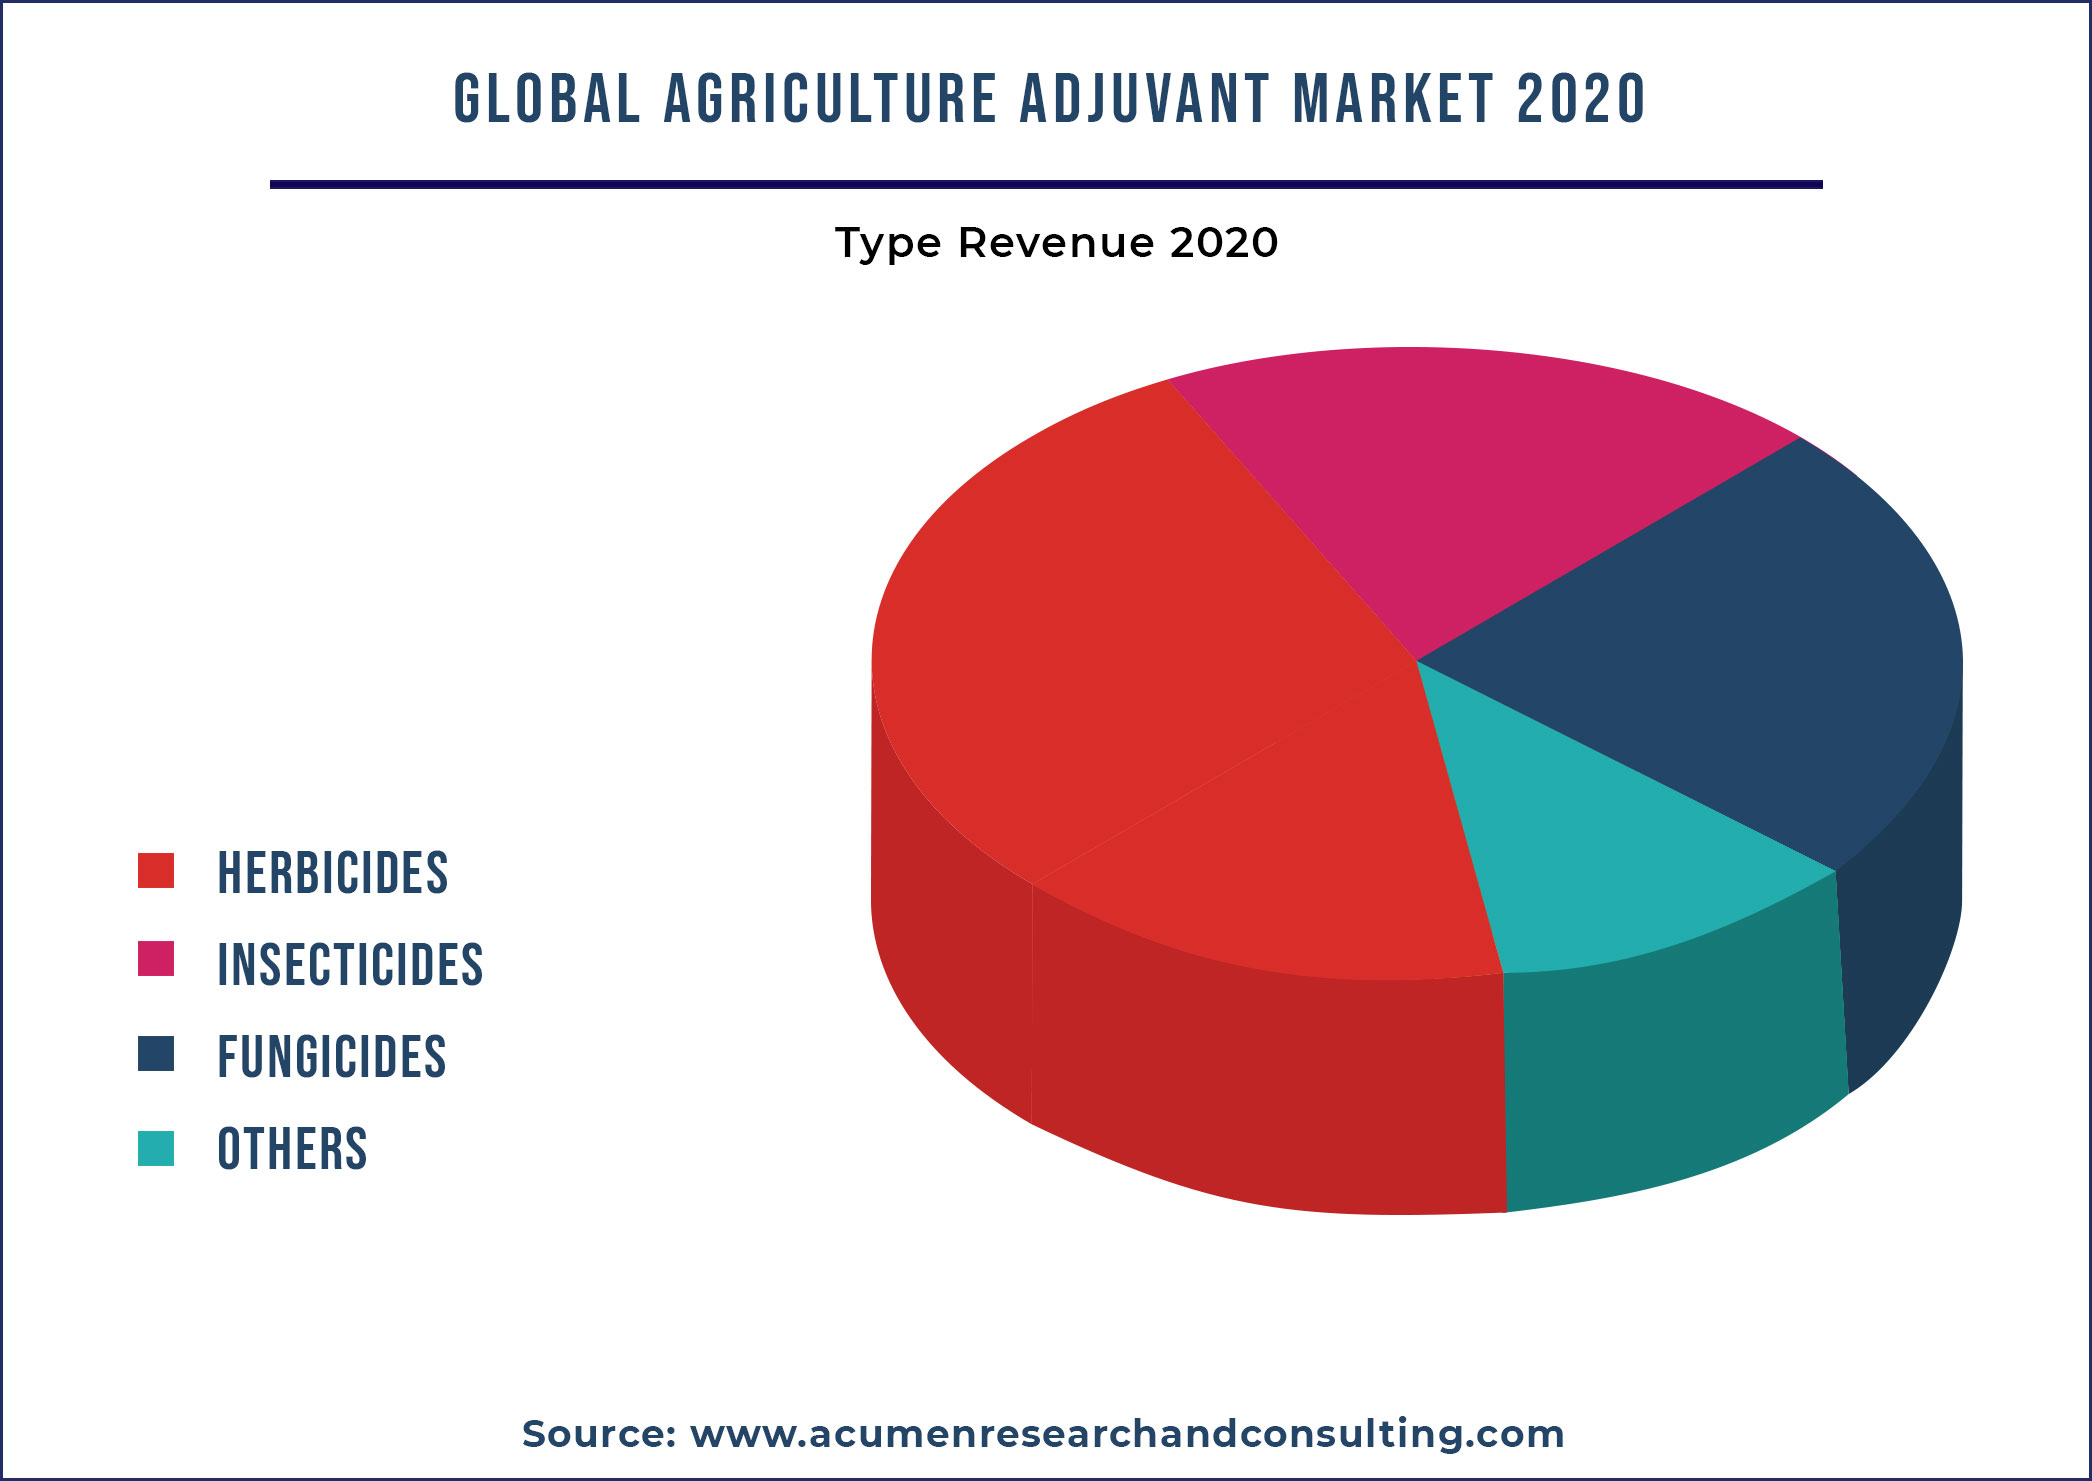 Agriculture Adjuvant Market By Type 2021-2028